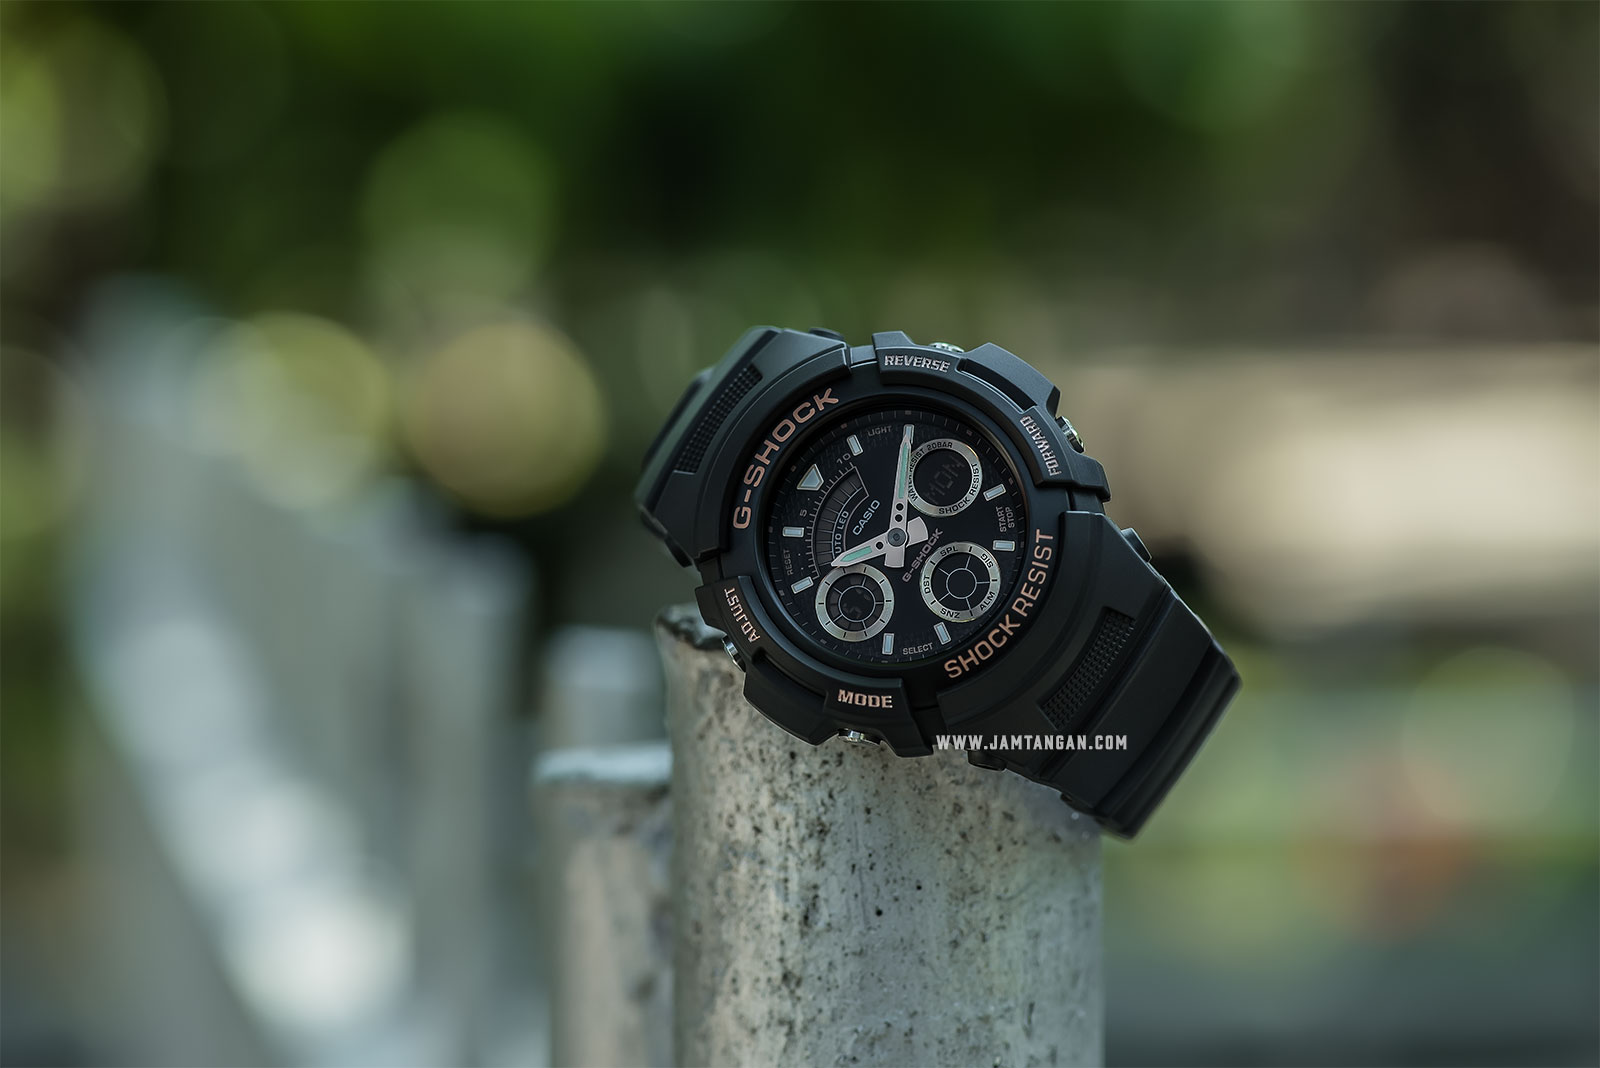 Casio G-Shock Special Color Models AW-591GBX-1A4DR Black Digital Analog Dial Black Resin Band Machtwatch